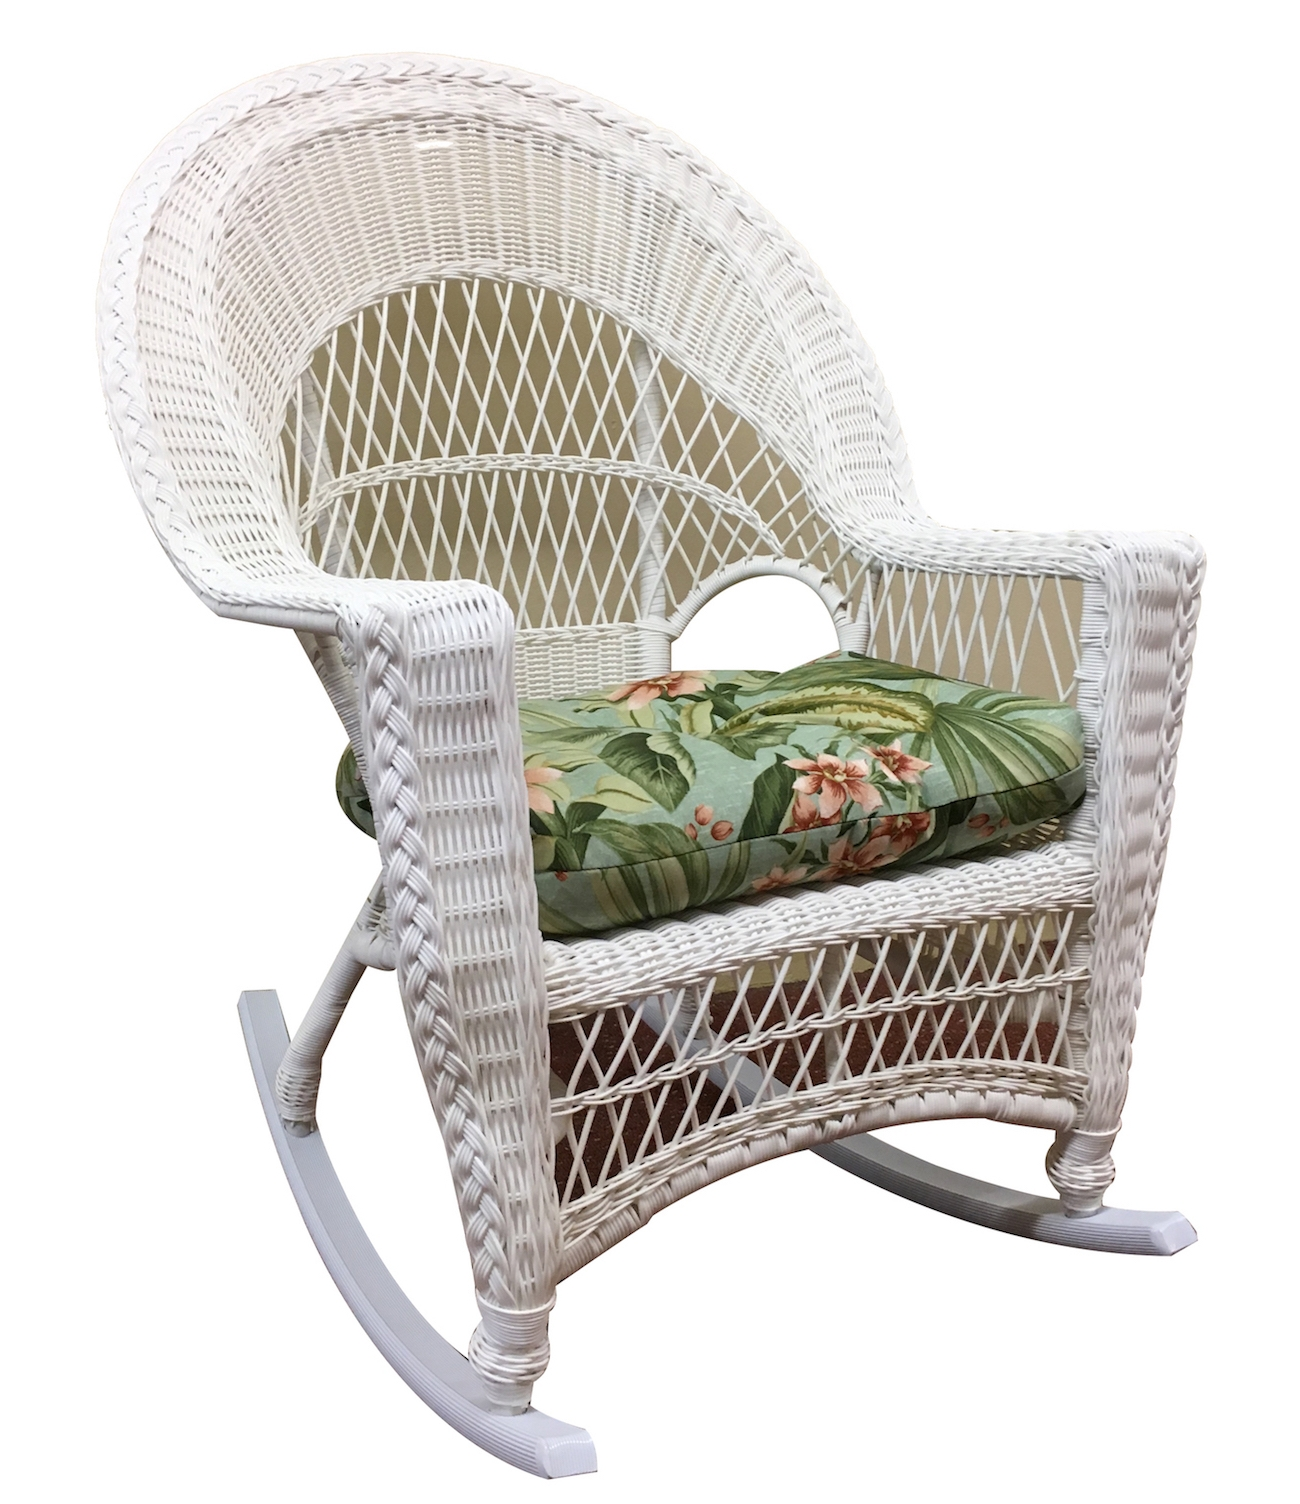 Well Known Resin Wicker Rocking Chairs Intended For Wicker Rocking Chair Design Outdoor Swivel Rockers Black Agreeable (View 19 of 20)